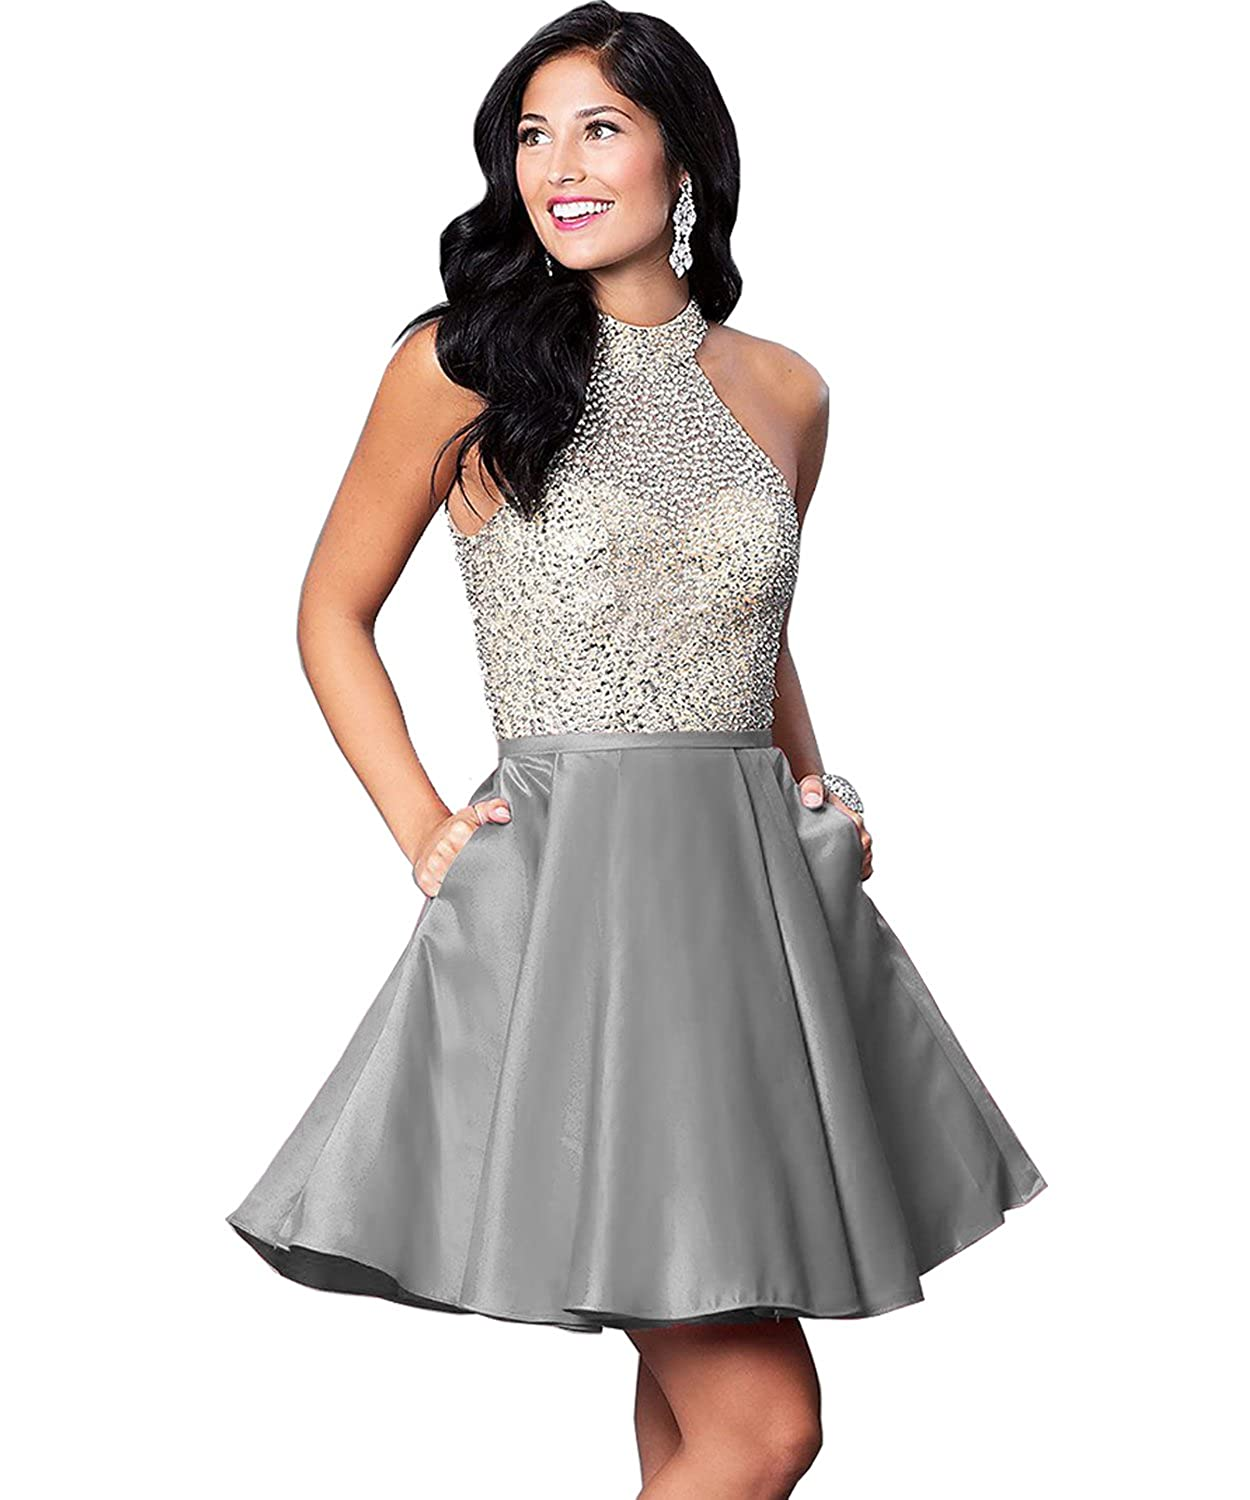 Yilis Womens Halter Beaded Bodice Satin Homecoming Dress Short Evening Party Gown with Pockets